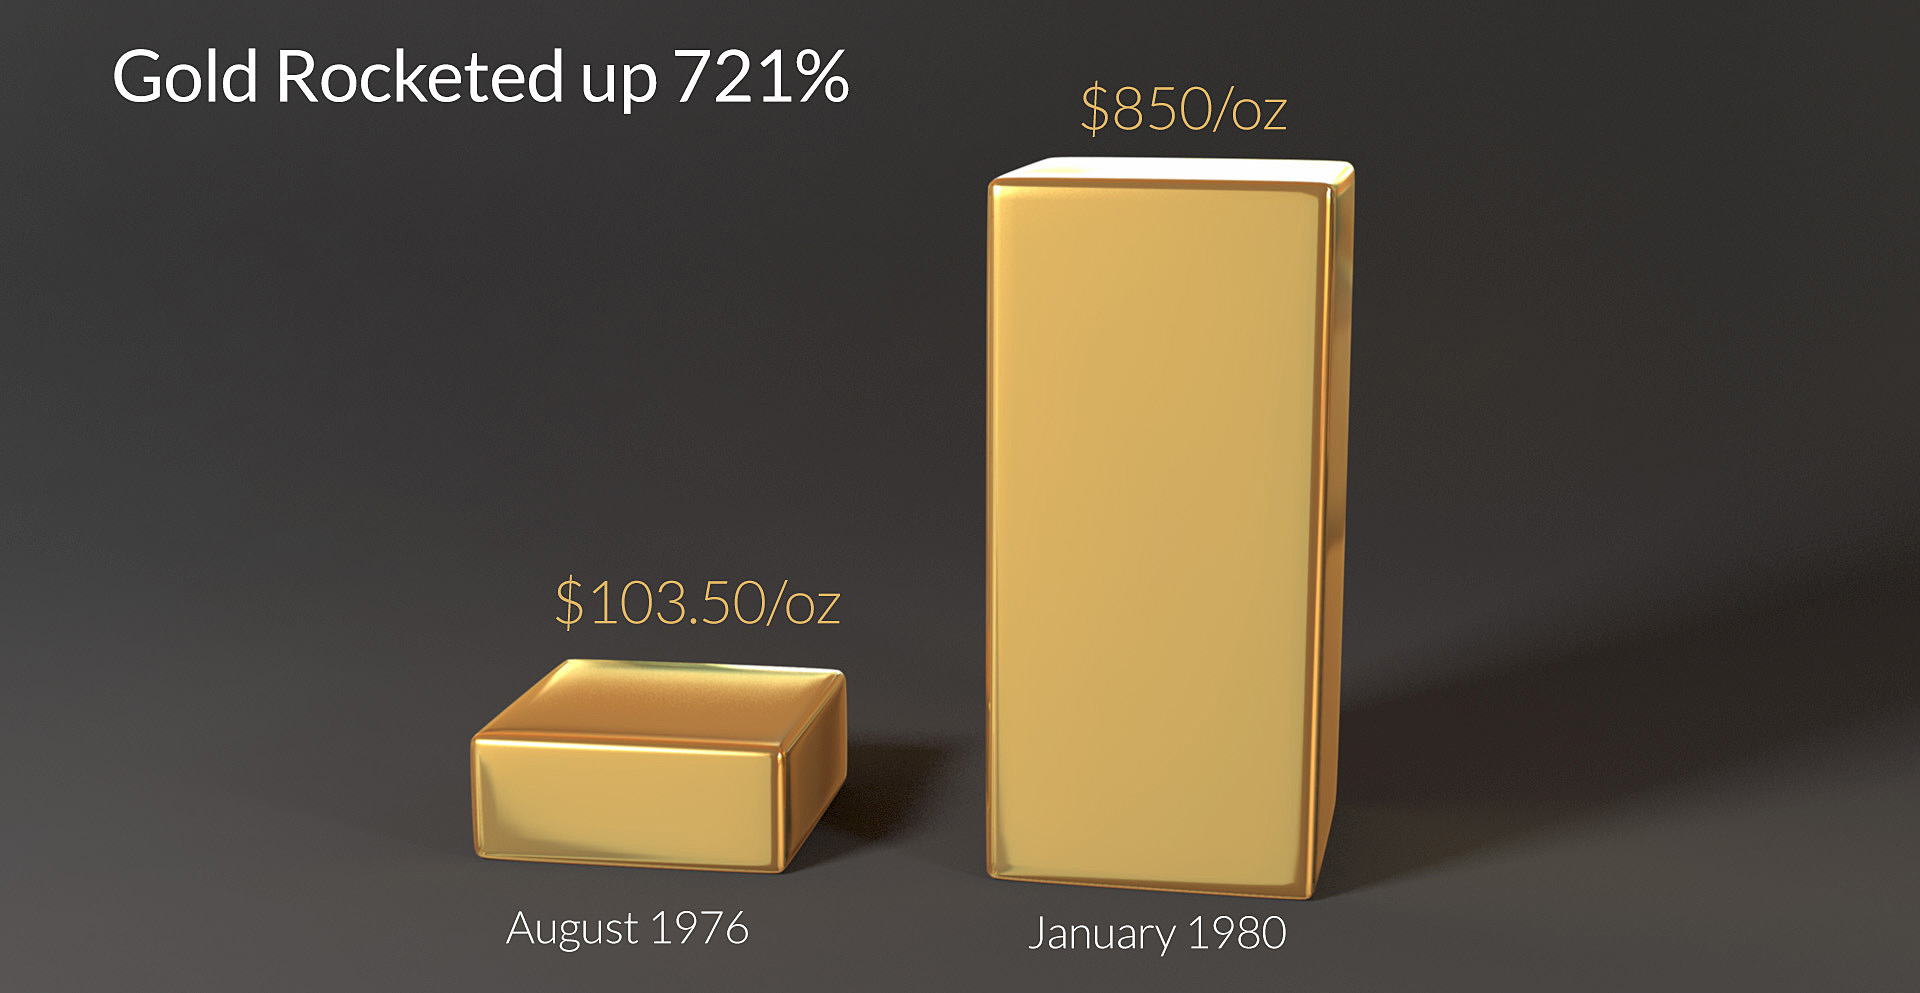 Gold Rocketed Up 721%